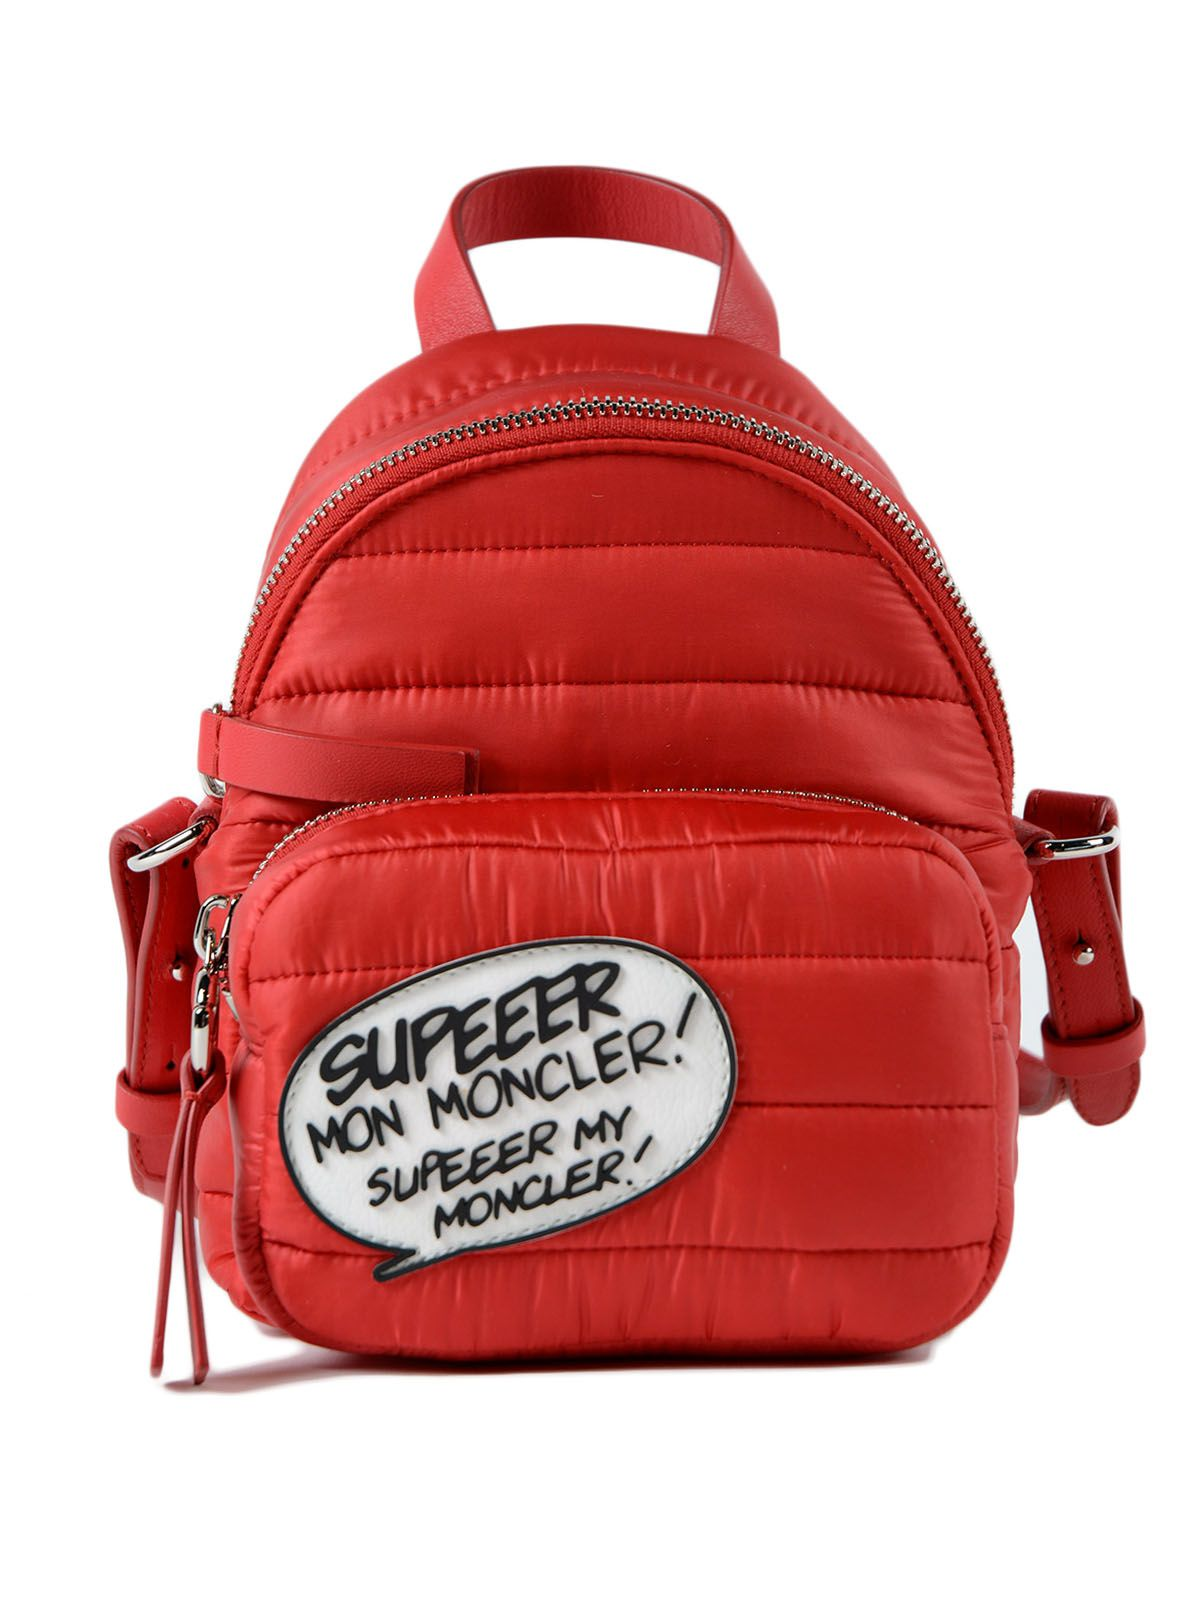 Backpack for Women On Sale, Red, Nylon, 2017, one size Moncler